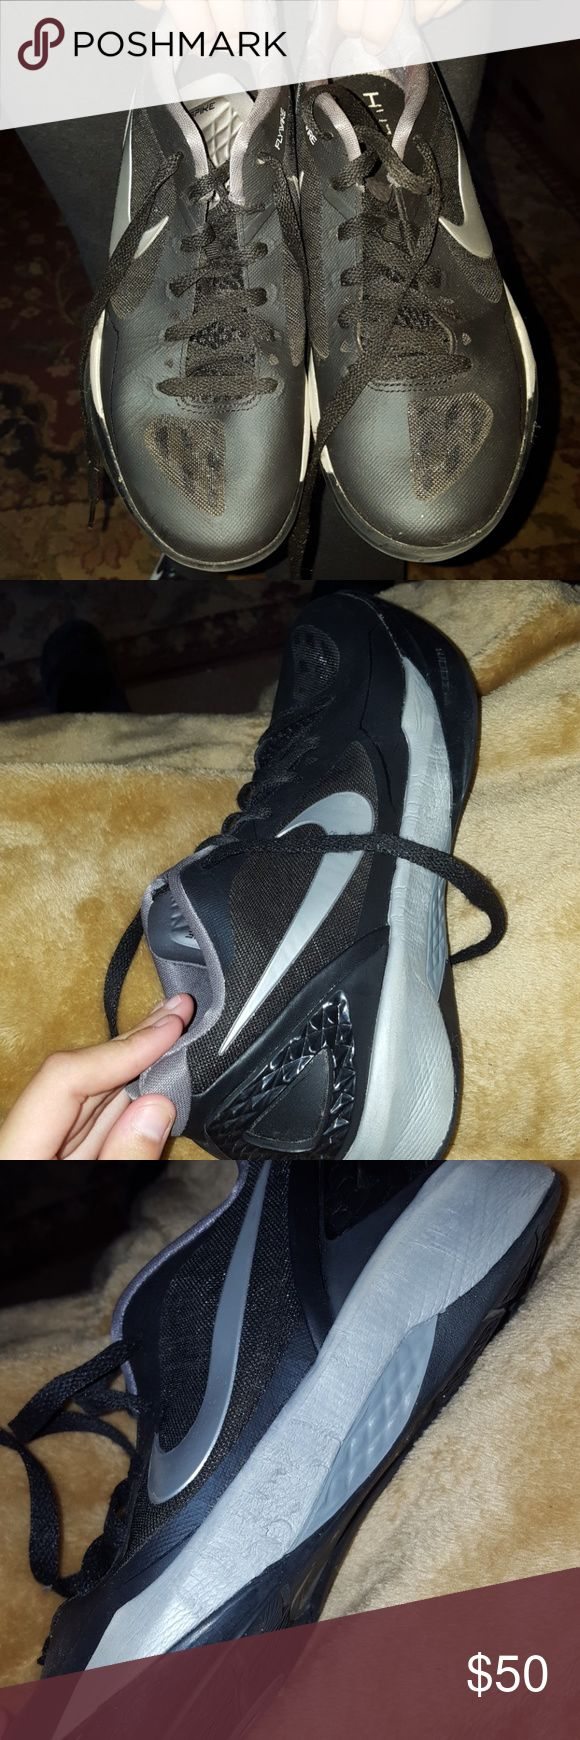 nike volleyball shoes worn for one club season but still in great condition Nike Shoes Athletic Shoes